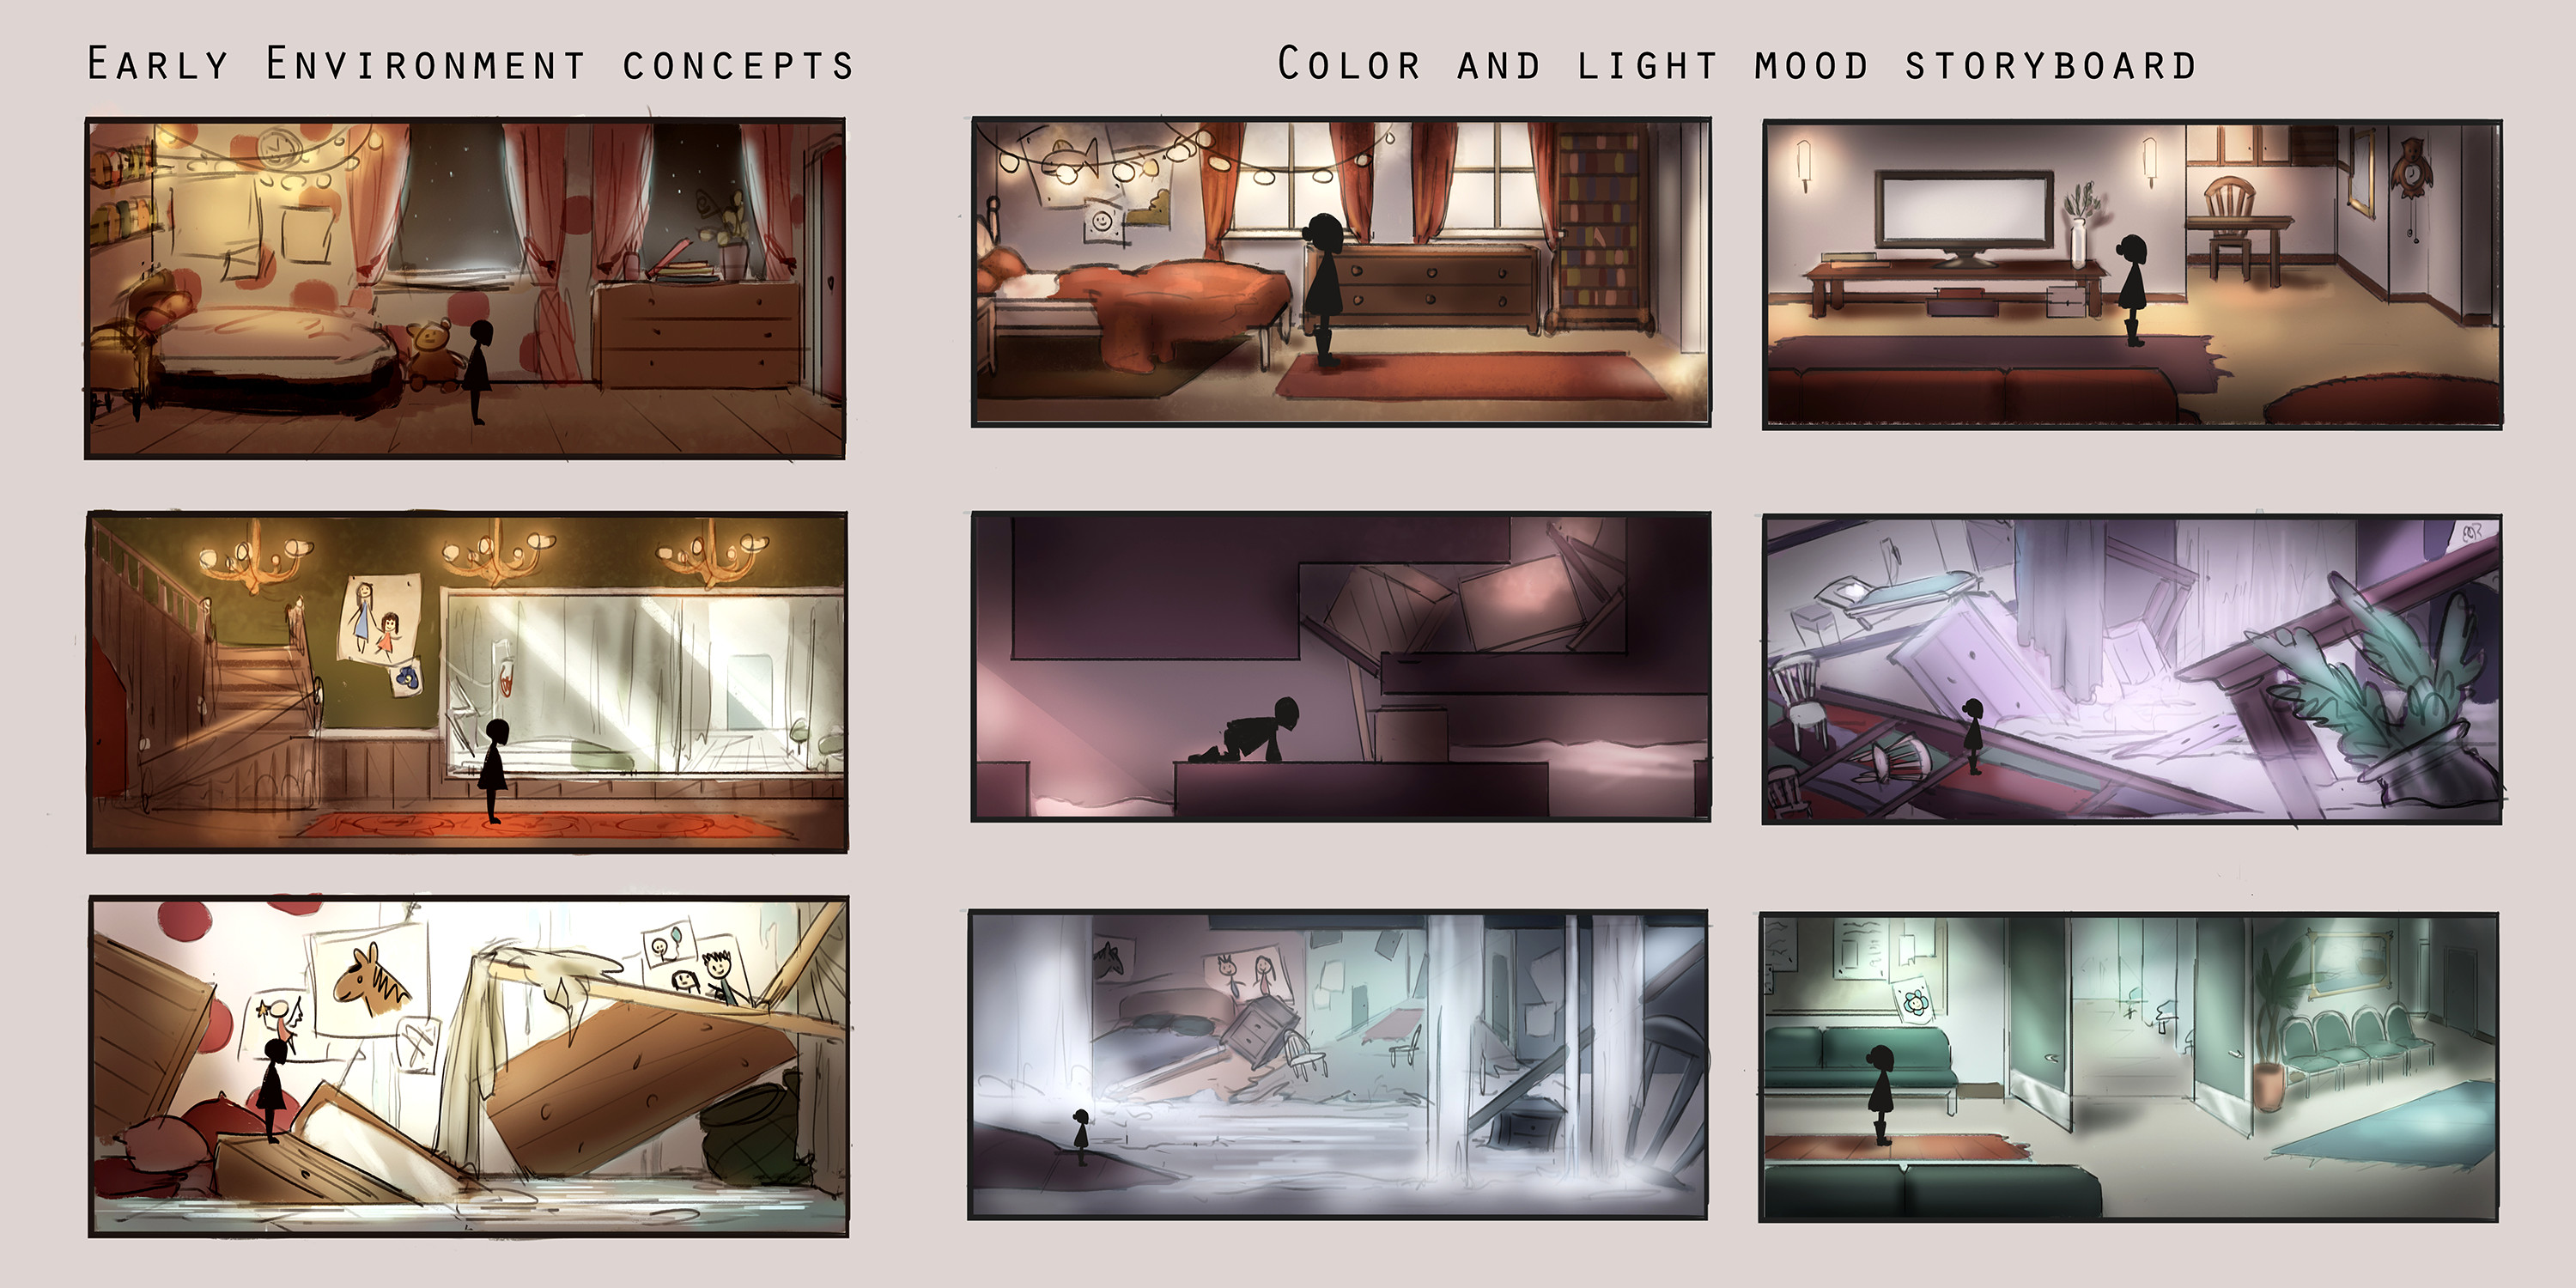 Early environment concepts and storyboard for colors and mood throughout the game. The goal was to describe the mood and lighting throughout the game for the 3D artists.